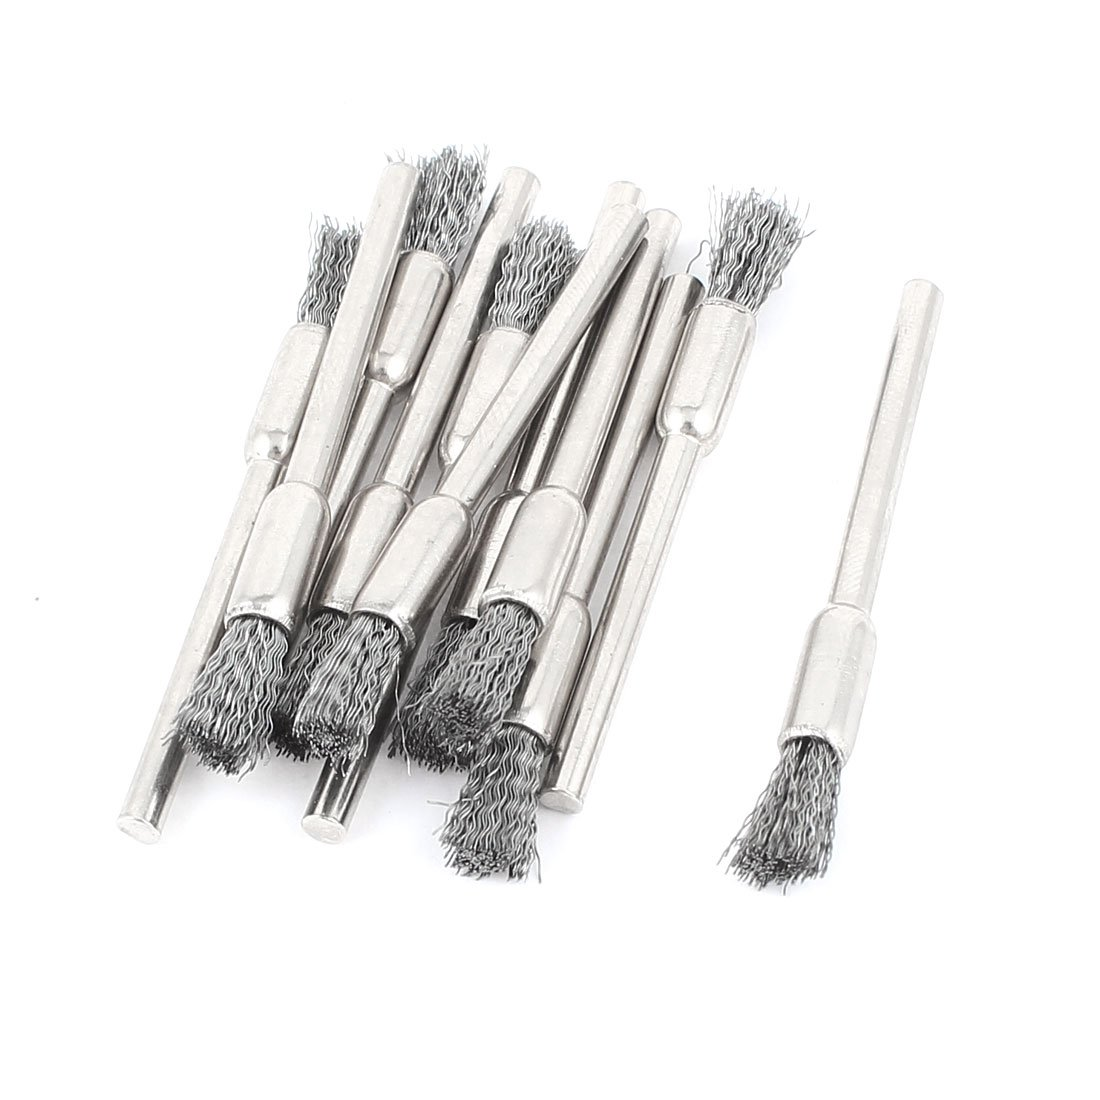 1/8 Inch Shank Gray Wire Pen Brush Polishing Buffing Tool 11 Pieces Sourcingmap a14110600ux0735